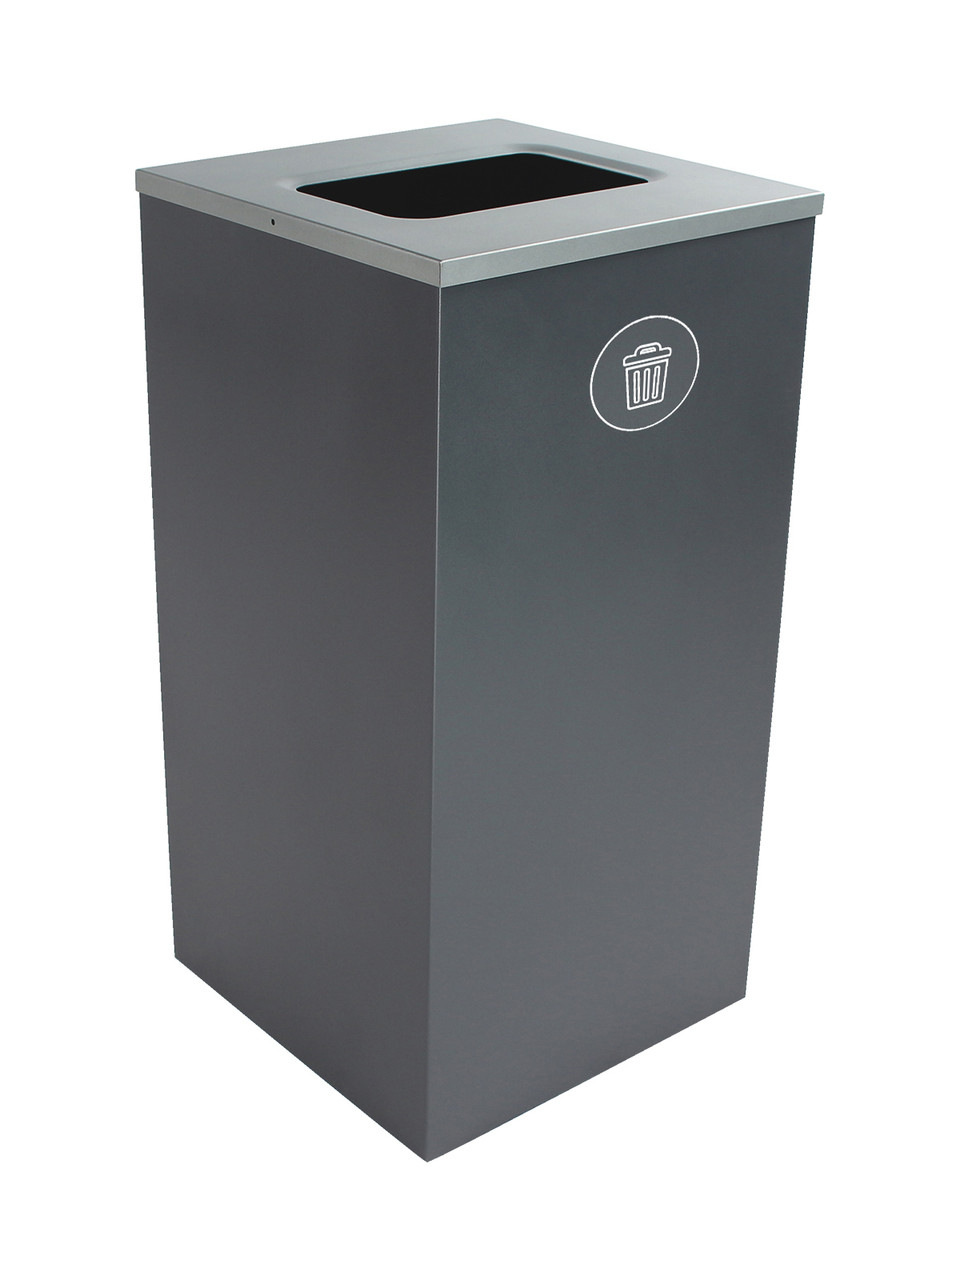 24 Gallon Steel Spectrum Cube Square Waste Can Gray 8107049-4